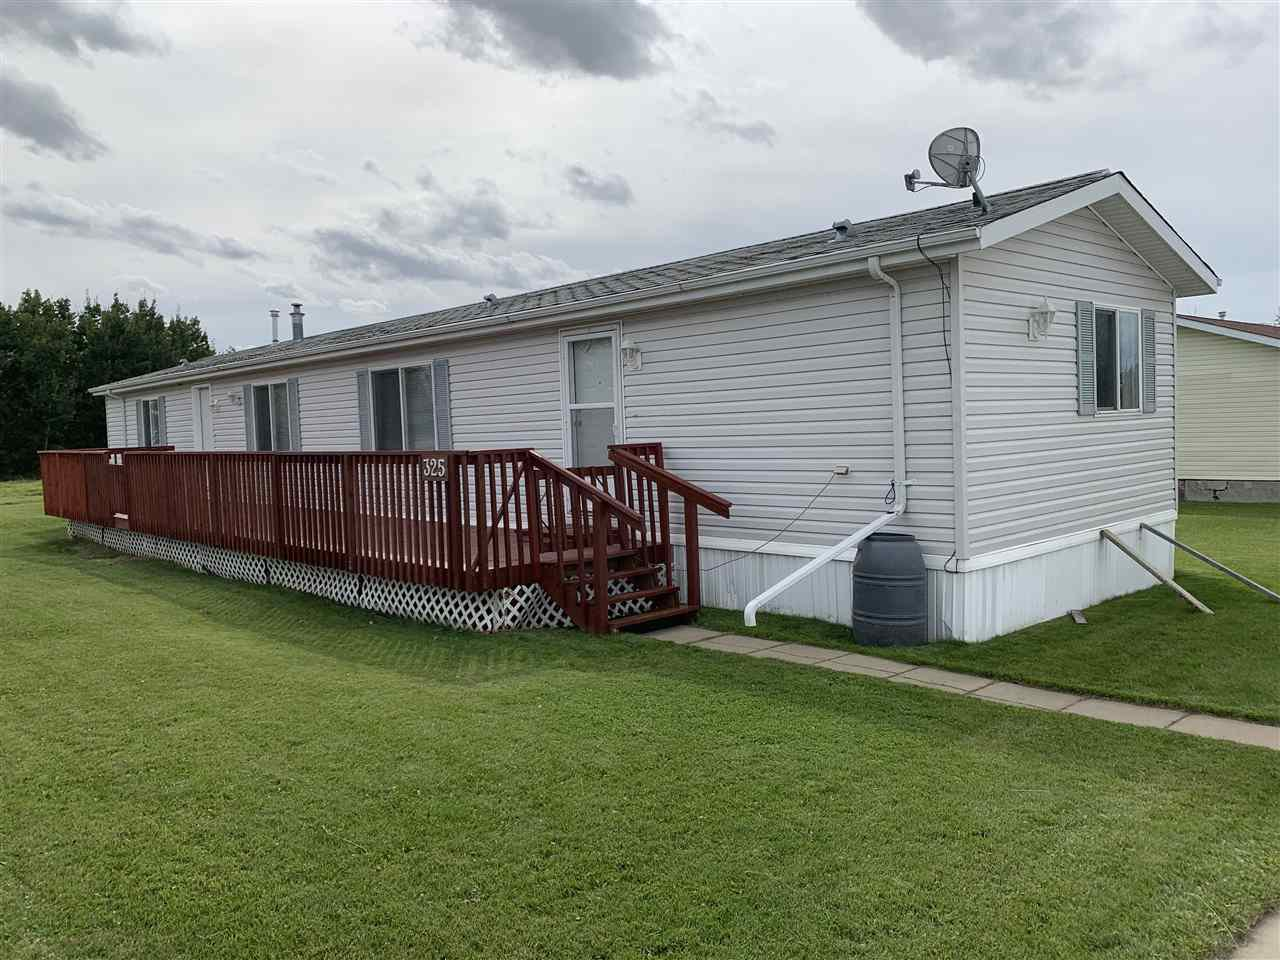 Main Photo: 325 26500 Hwy 44: Riviere Qui Barre House for sale : MLS®# E4213162